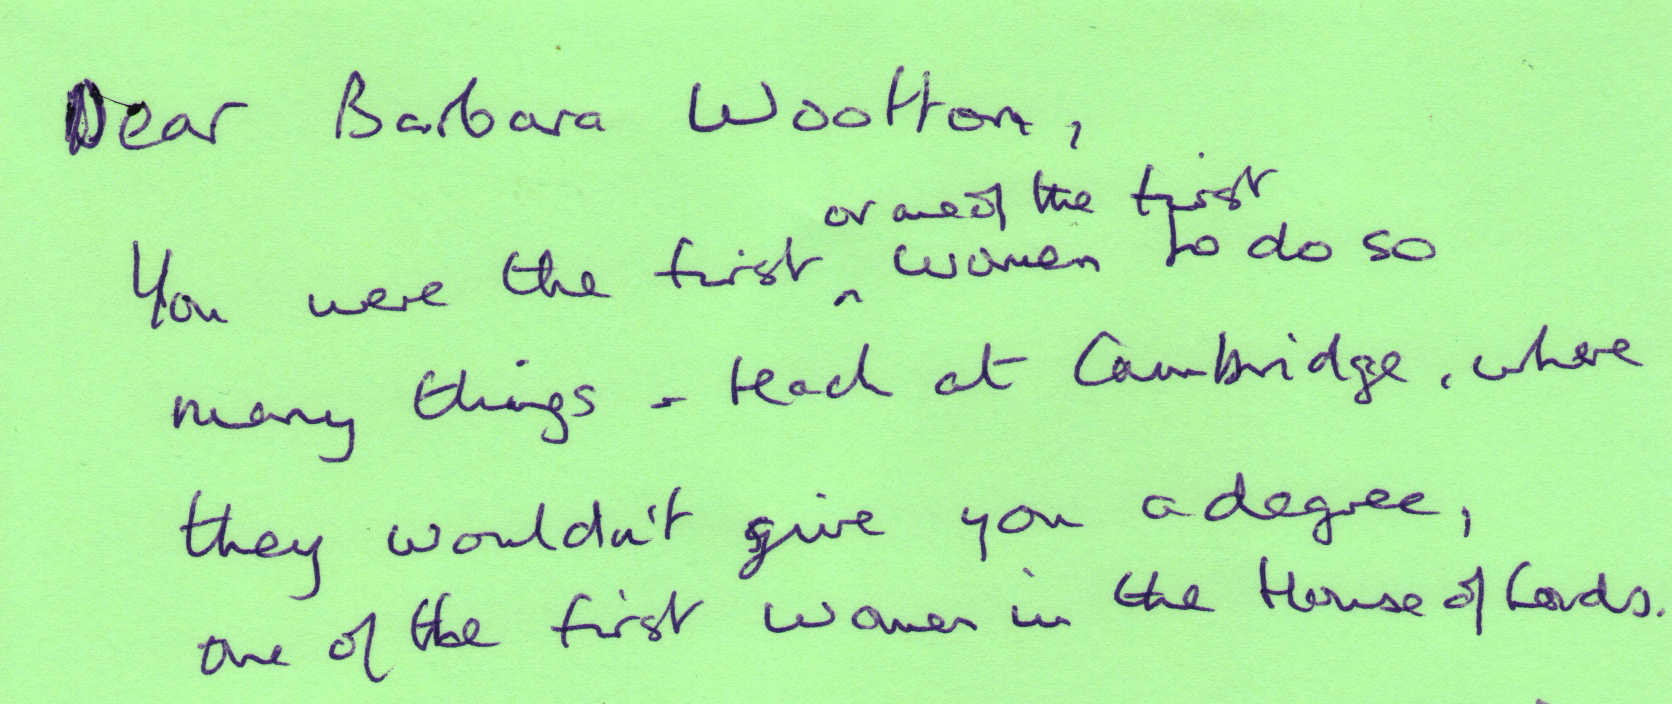 Letter to Barbara Wootton from June Westley